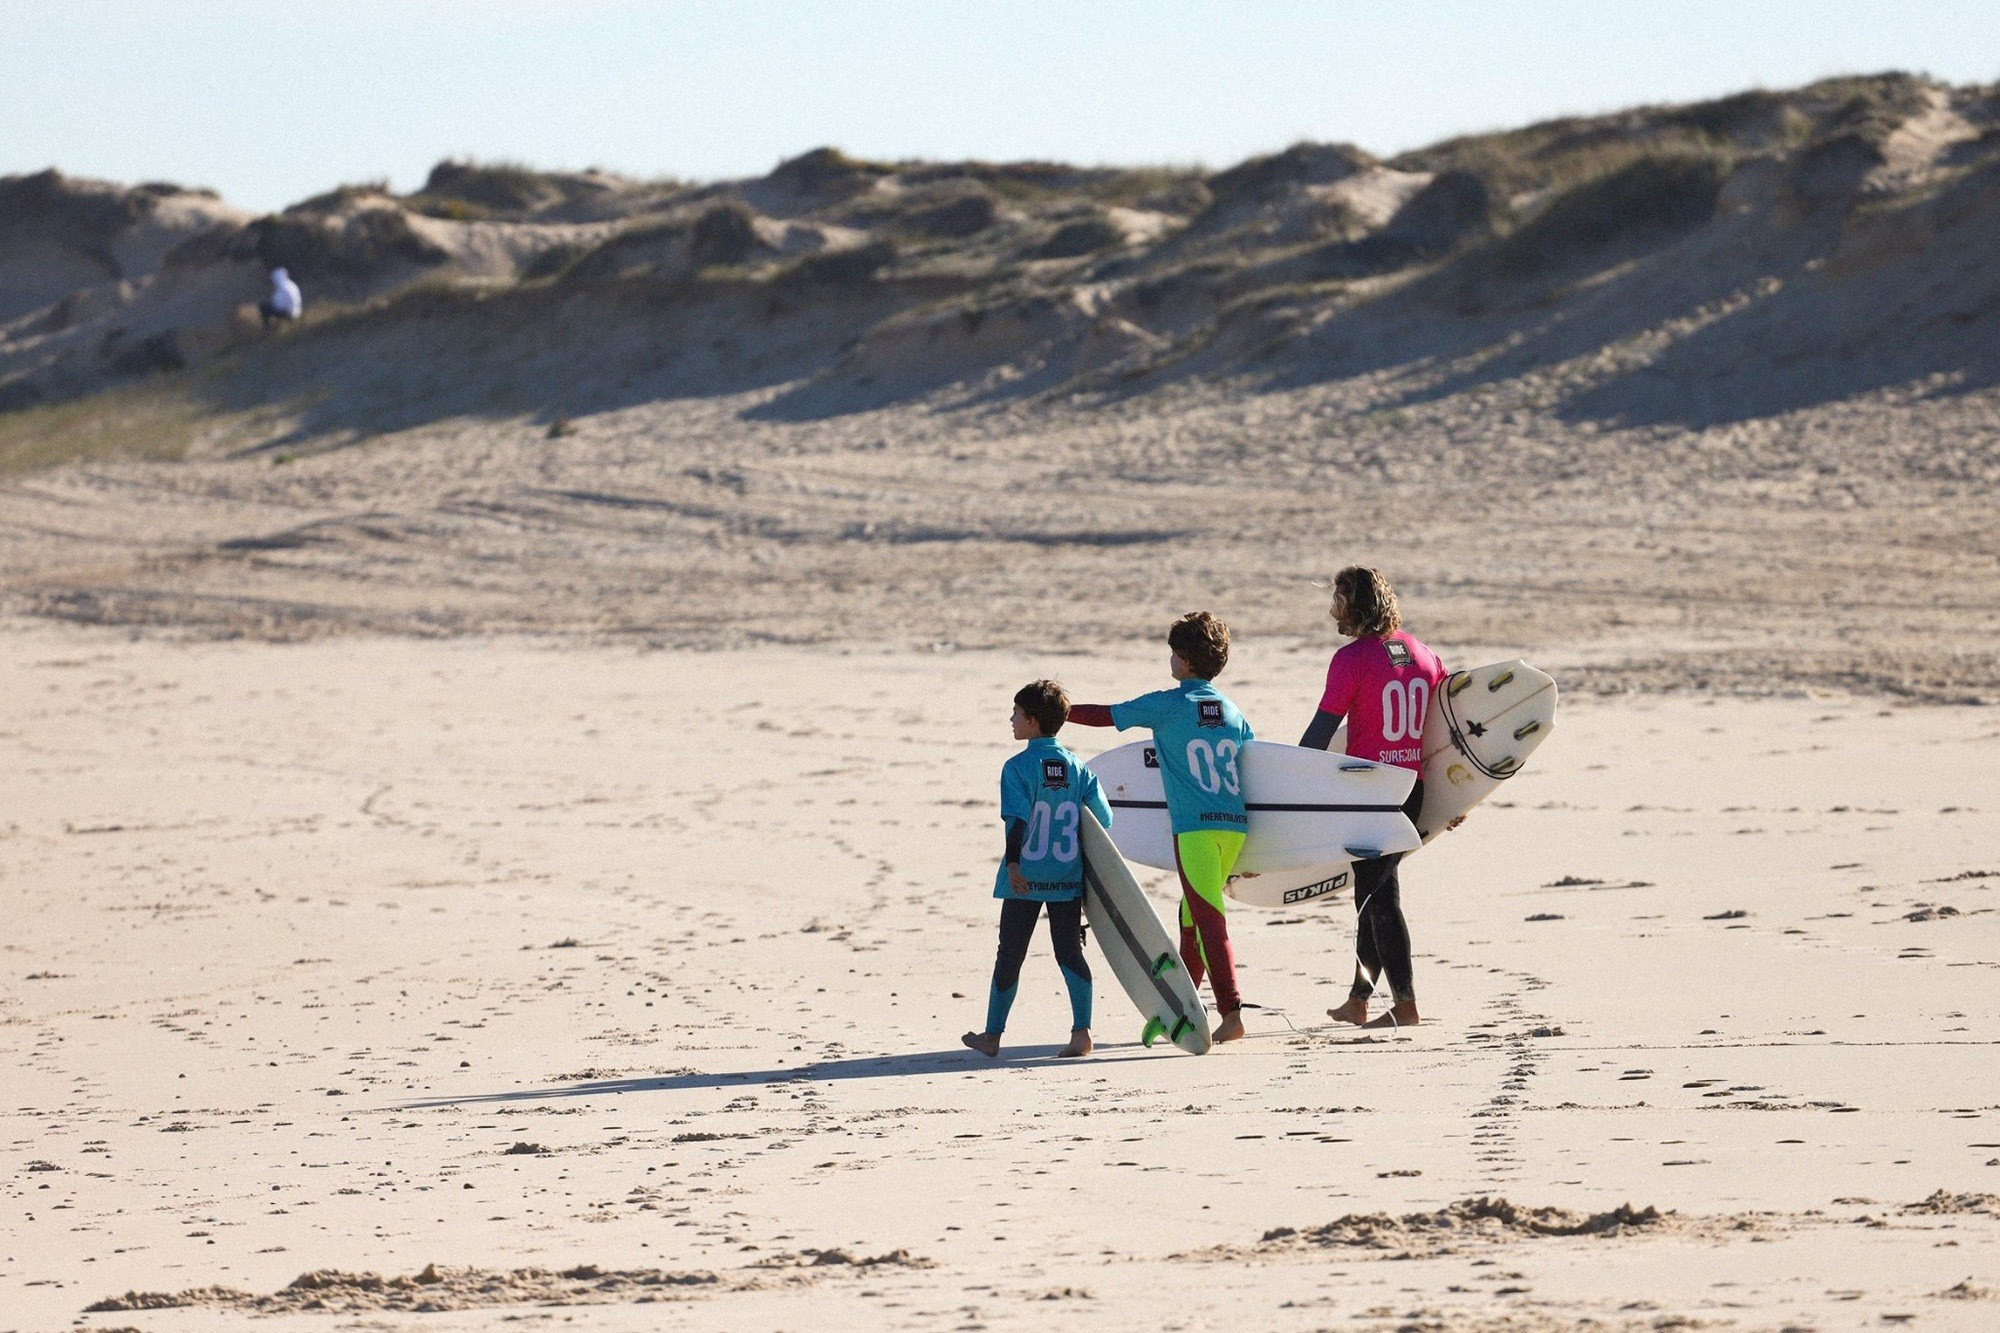 500/Photos/academies/Surf school/hotel-ride-surf-spa-peniche-surf-cours-enfant-plage-jpg.jpg